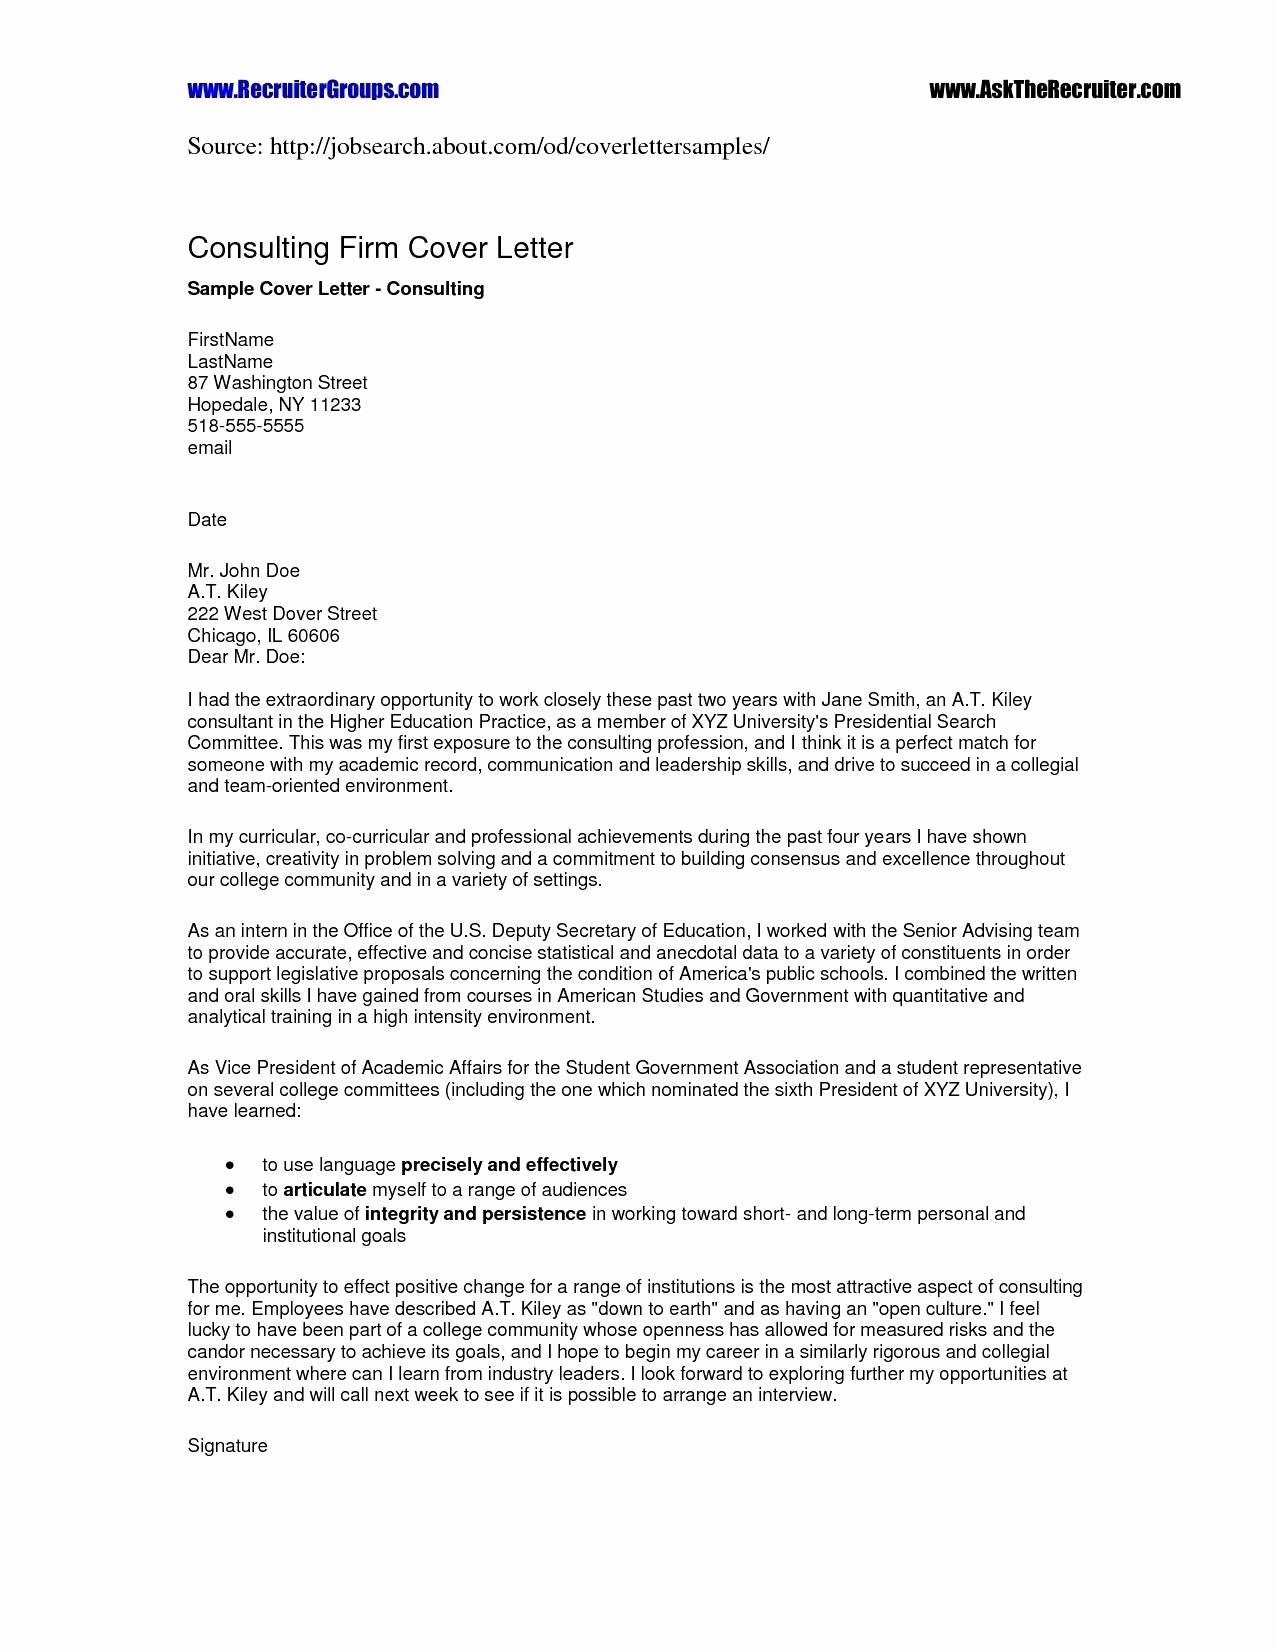 Fax Cover Letter Template Word - 41 Fresh Printable Fax Cover Letter Resume Templates Ideas 2018